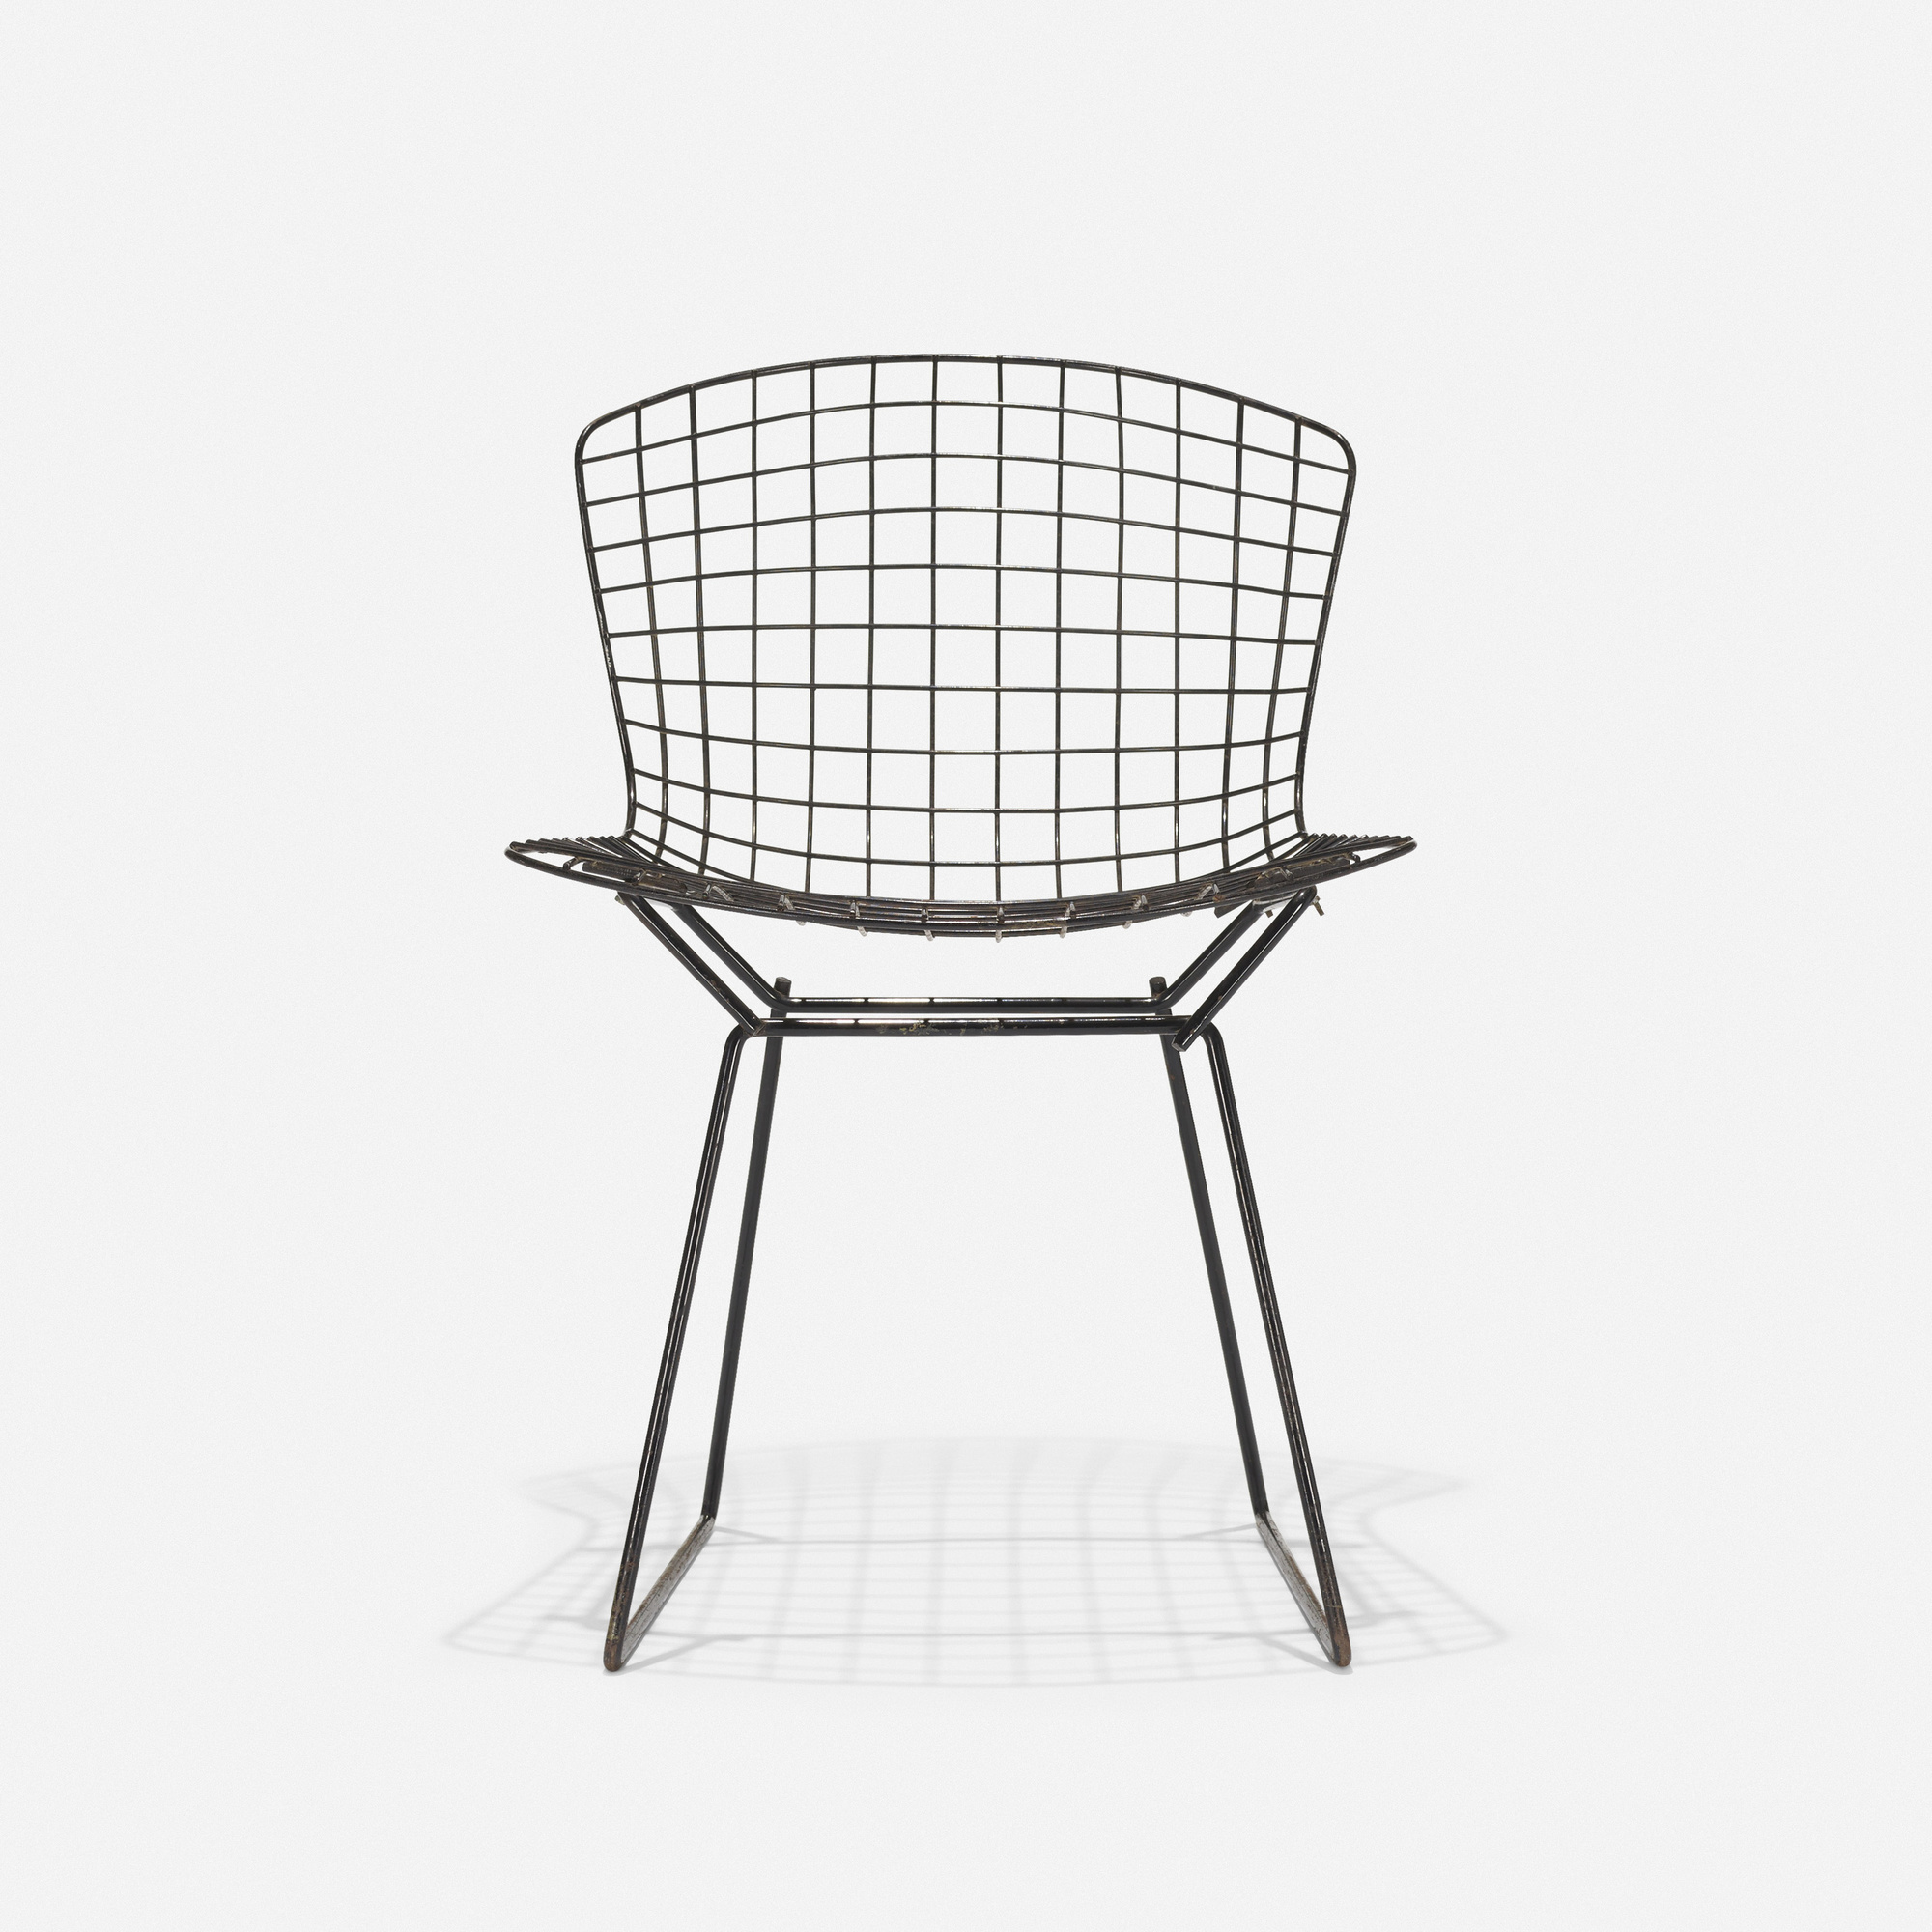 223: Harry Bertoia / chair (1 of 3)